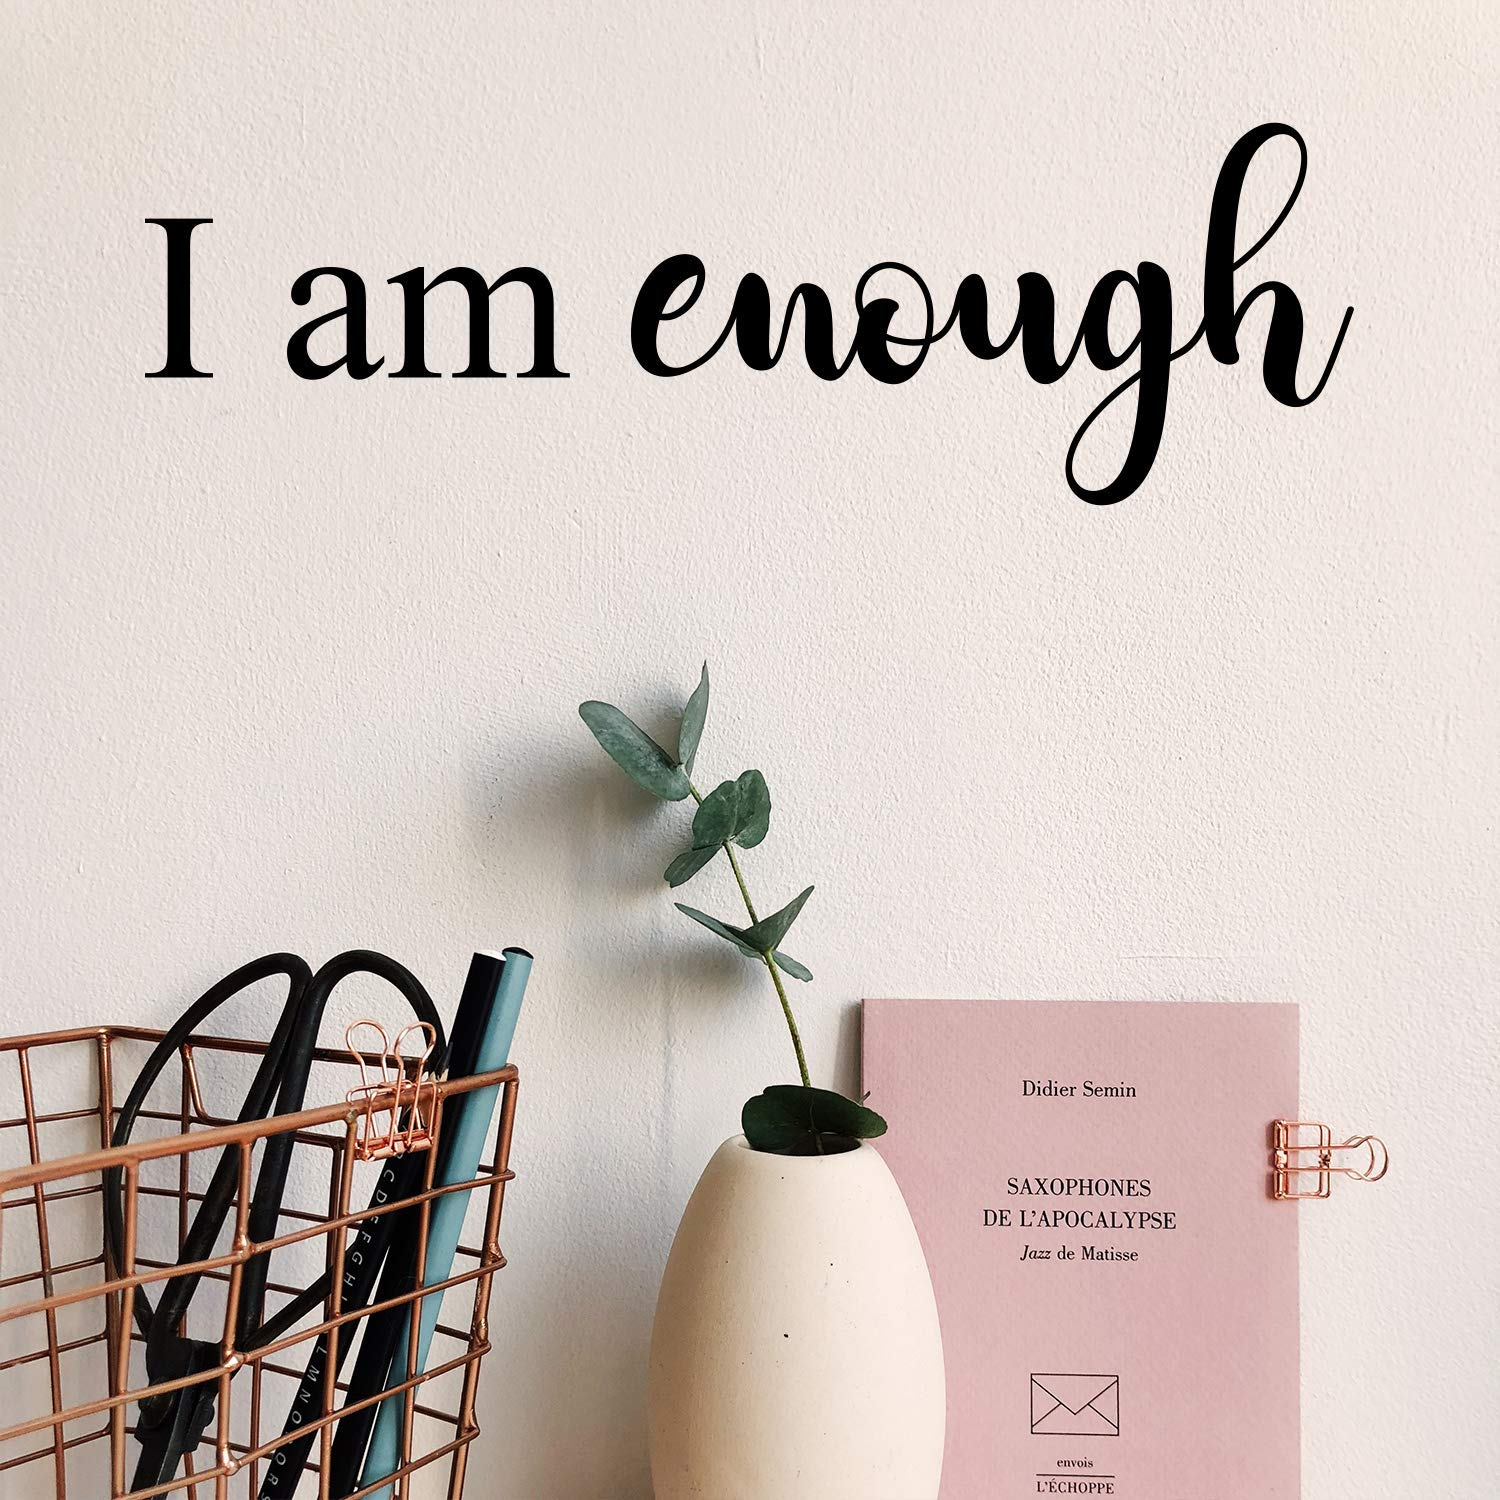 """Vinyl Wall Art Decal - I Am Enough - 5"""" x 15"""" - Modern Inspirational Self Worth Love Quote for Home Bedroom Bathroom Dressing Table Mirror Office Decoration Sticker"""